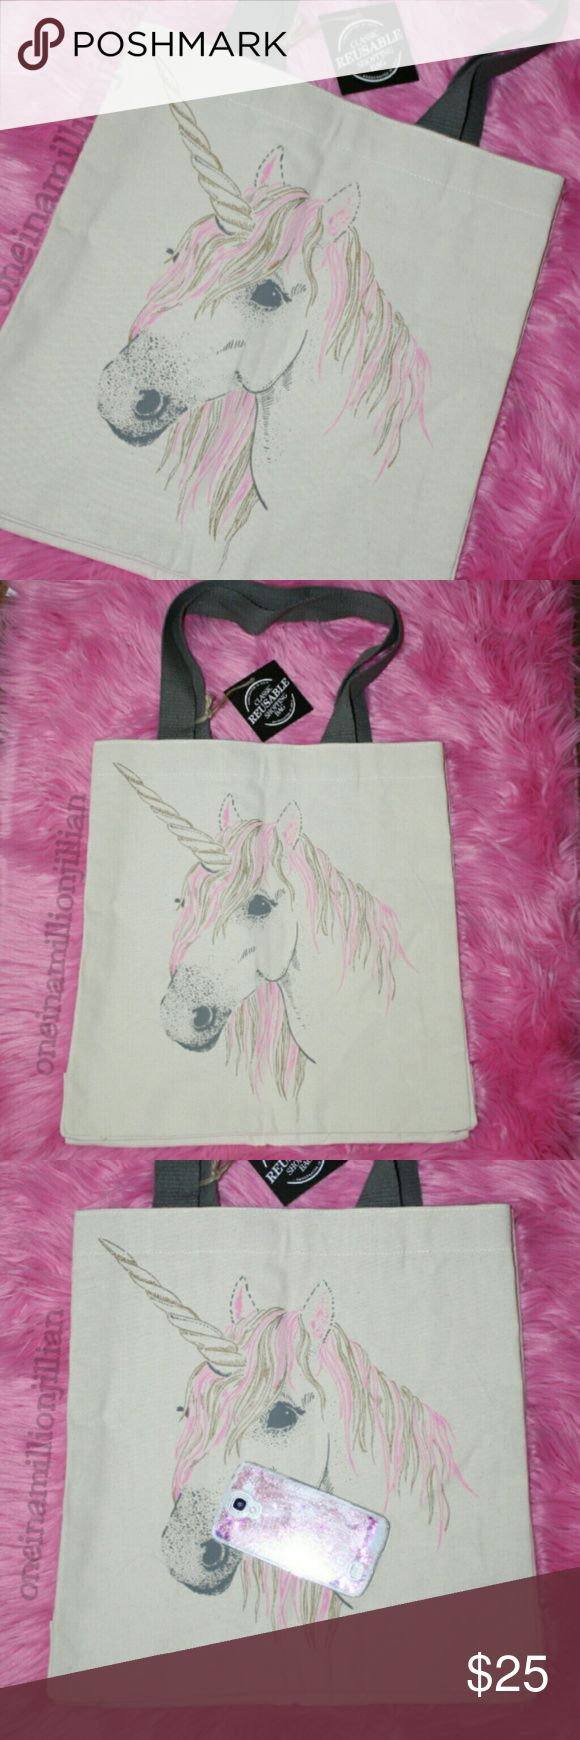 """NWT Large Unicorn Reusable Shopping Tote Bag New with Tags  Classic Reusable Shopper  This all purpose, durable canvas carry all is very well made. Its large size makes it ideal for a variety of uses; carrying everyday essentials to work/school, running errands, grocery/farmers market shopping, trips overnight or for a day at the zoo or beach. It will literally hold everything you could need & then some.  ☆ Double-sided unicorn graphic ☆ Measures 15.5""""x 15.5""""x 5.5"""" ☆ 10.5"""" drop shoulder…"""